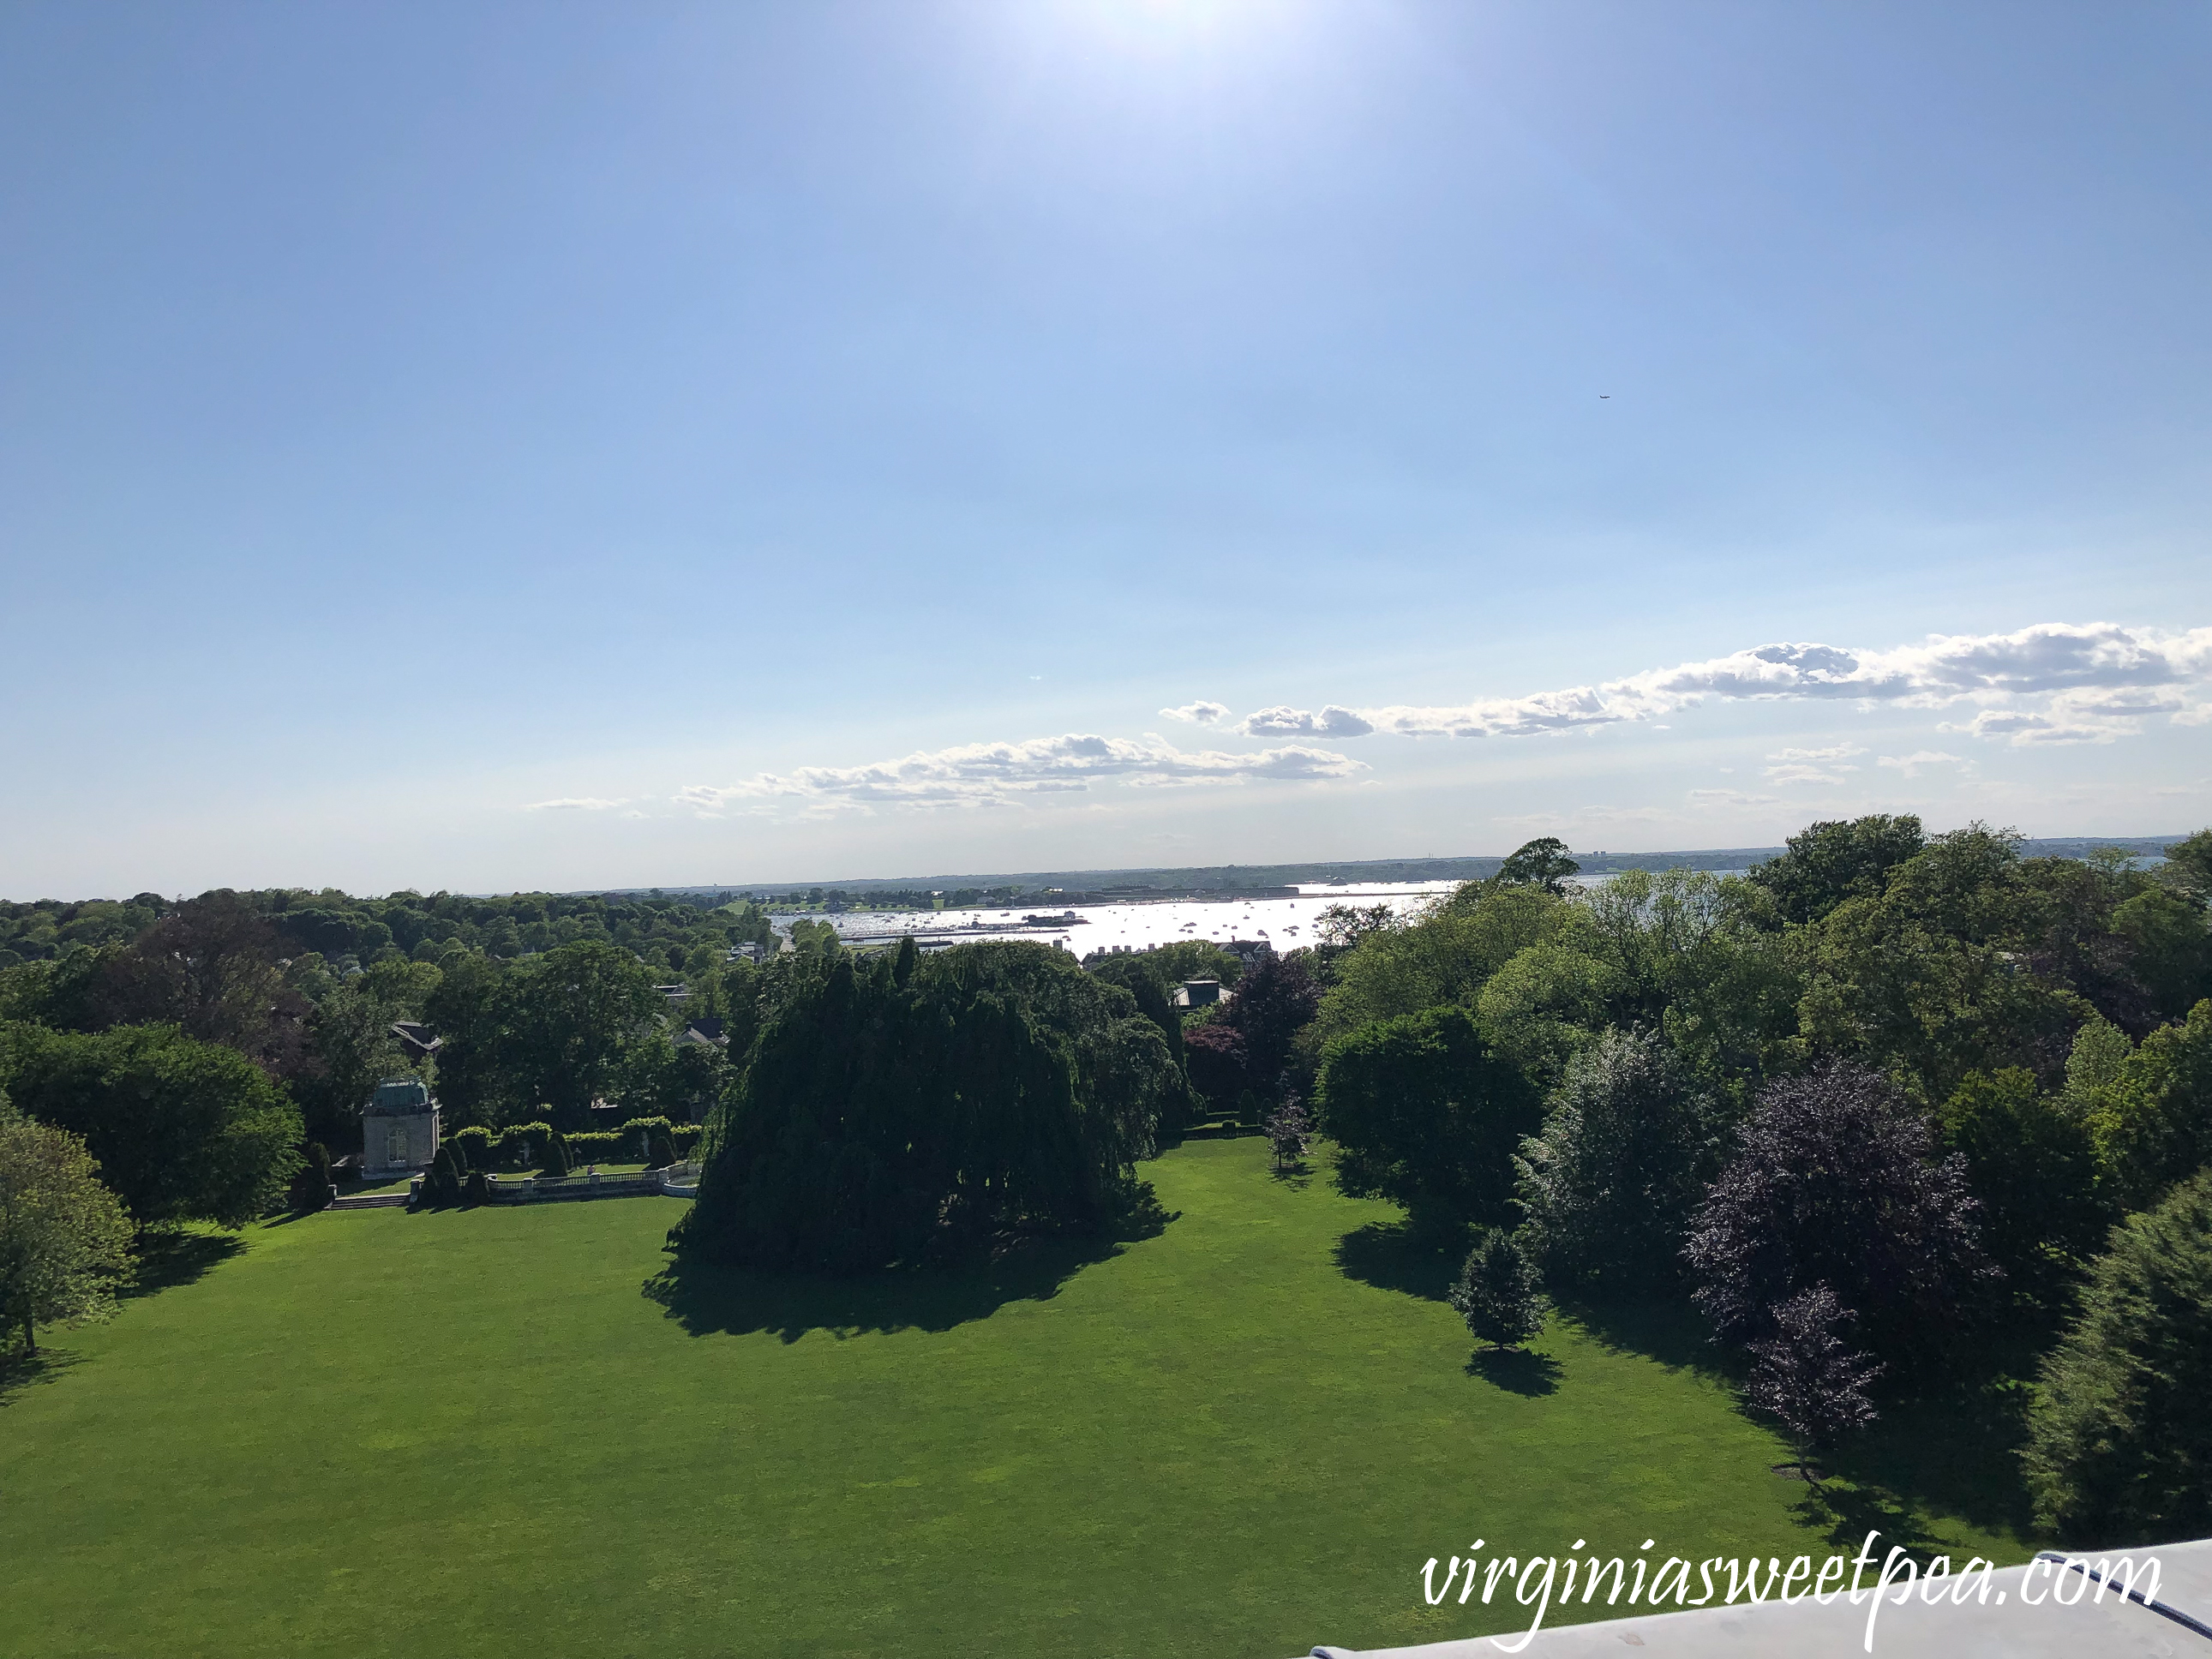 View from the roof of The Elms in Newport, RI